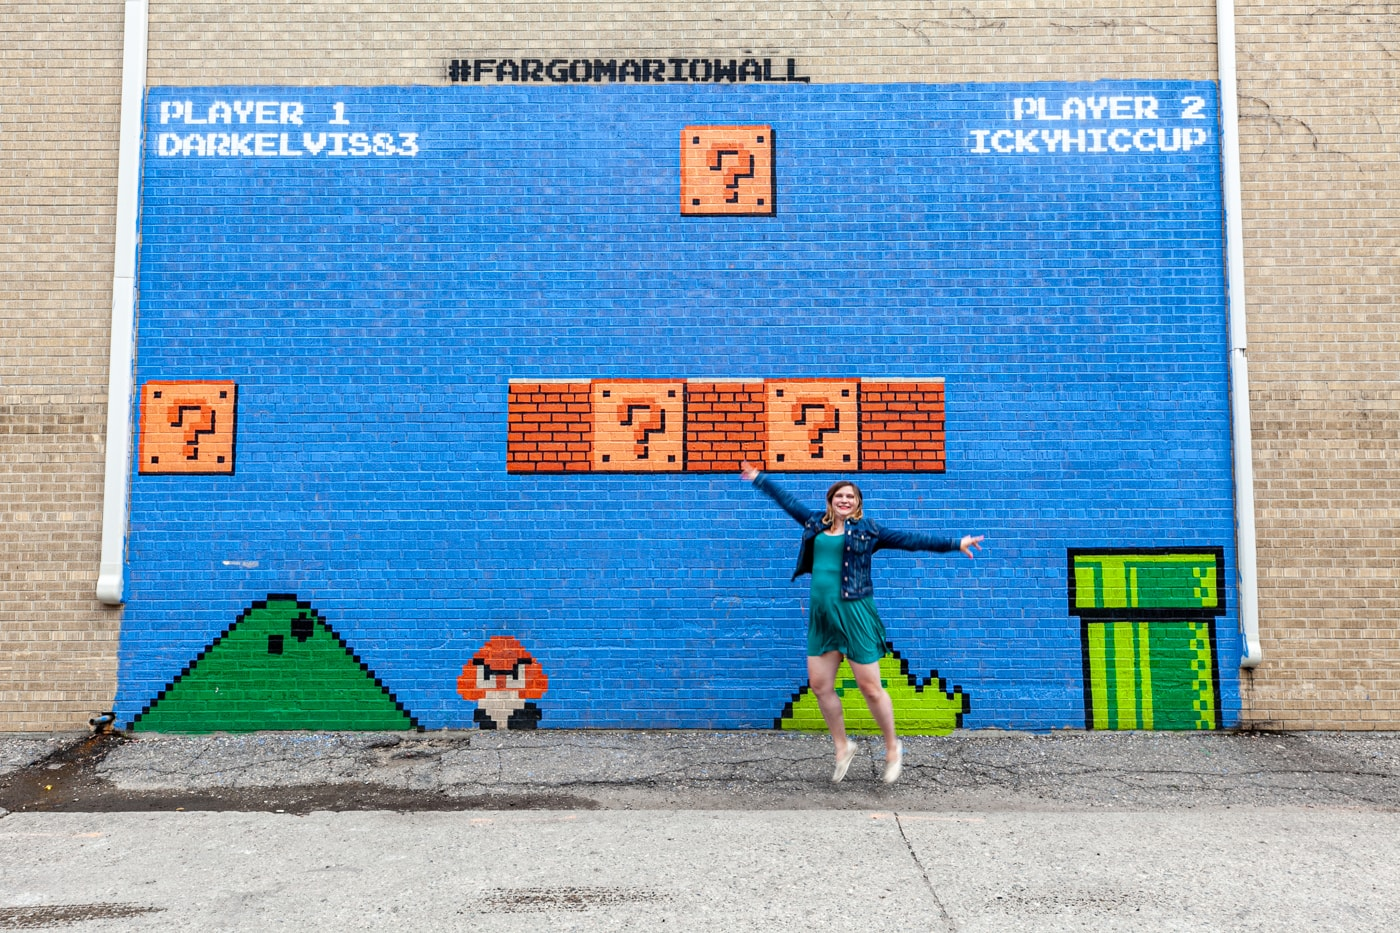 Super Mario Bros mural wall in Fargo, North Dakota.